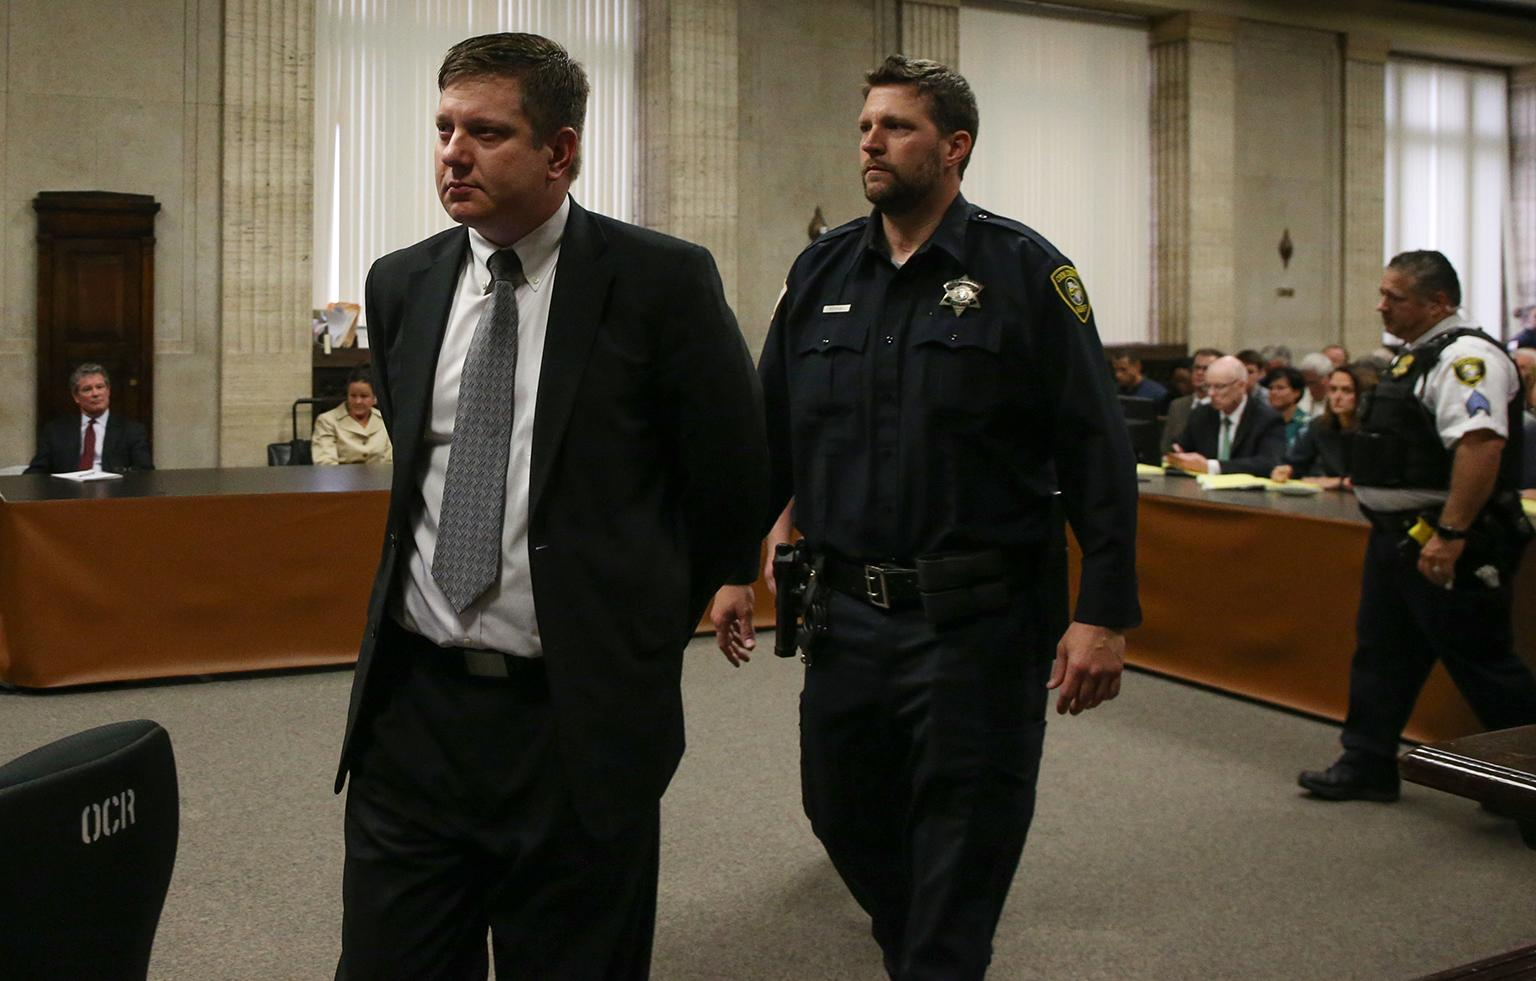 Chicago police Officer Jason Van Dyke is led out of the courtroom following the verdict announcement Friday, Oct. 5, 2018. (Antonio Perez / Chicago Tribune / Pool)